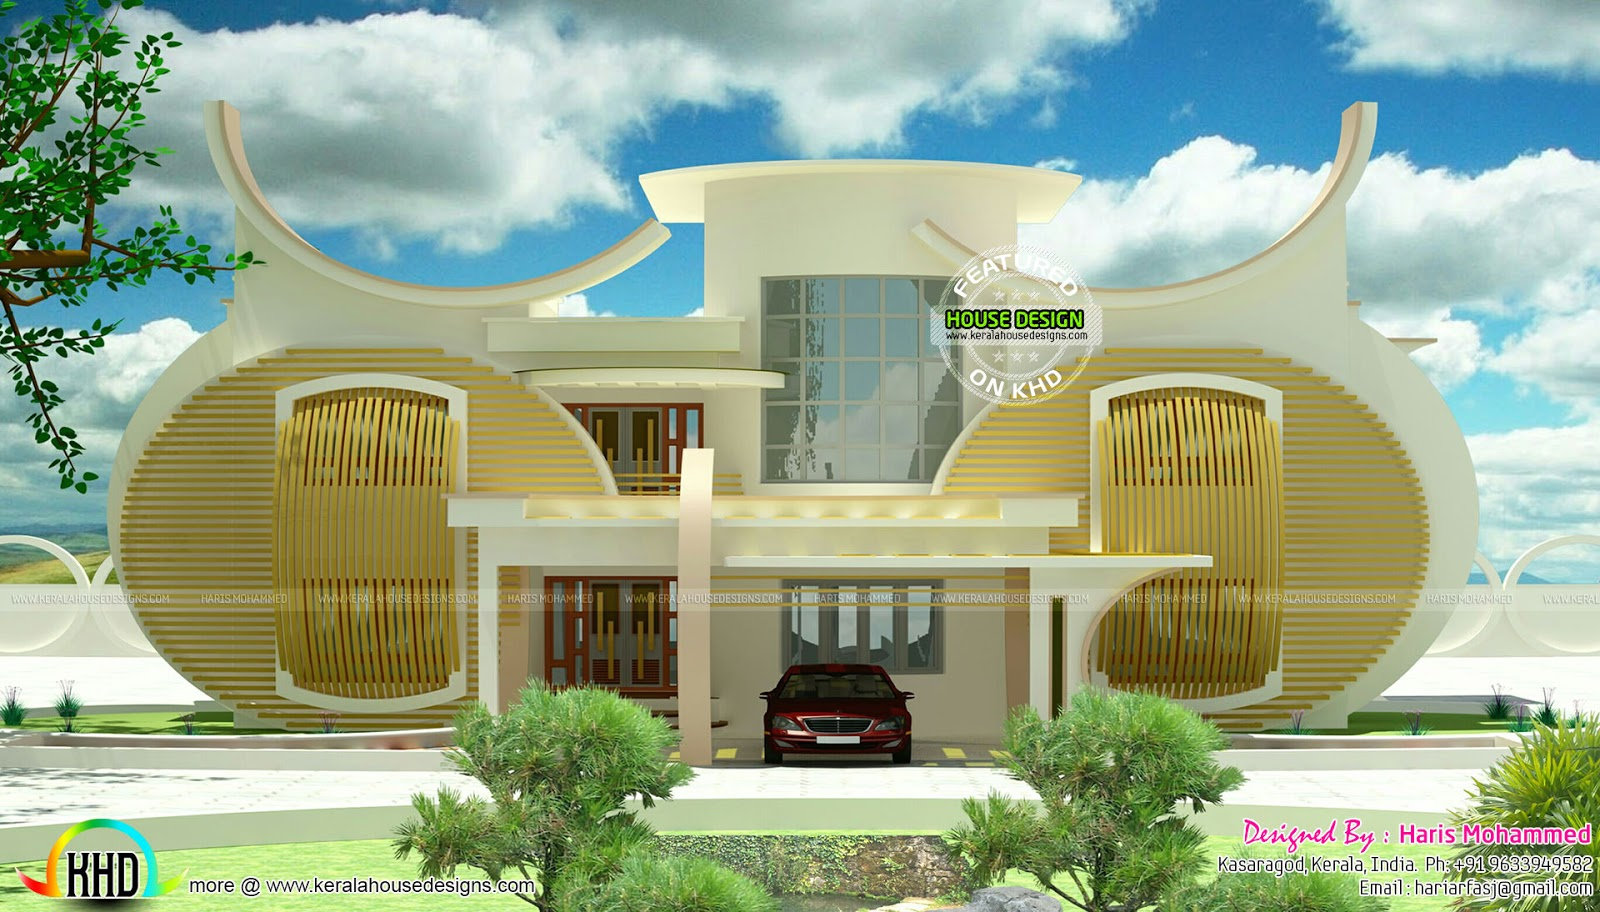 Strange circular home design kerala home design and for Home by design